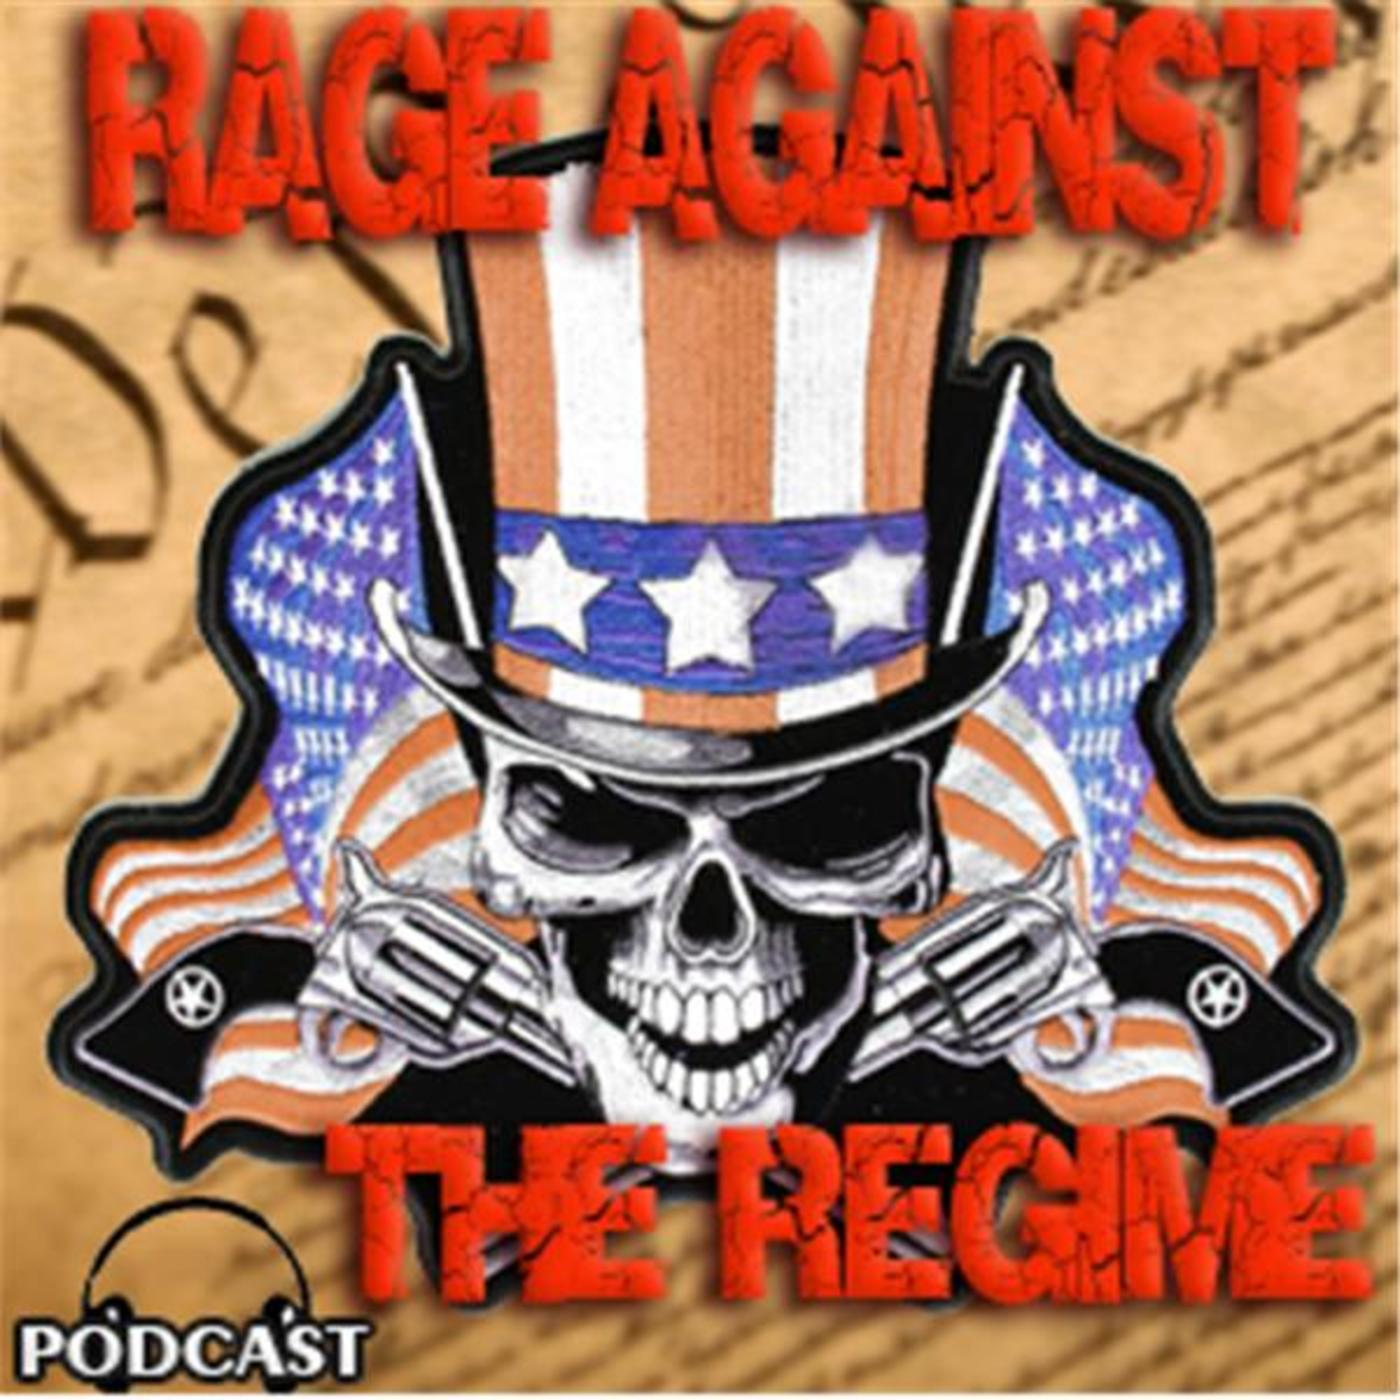 rage against the regime podcast